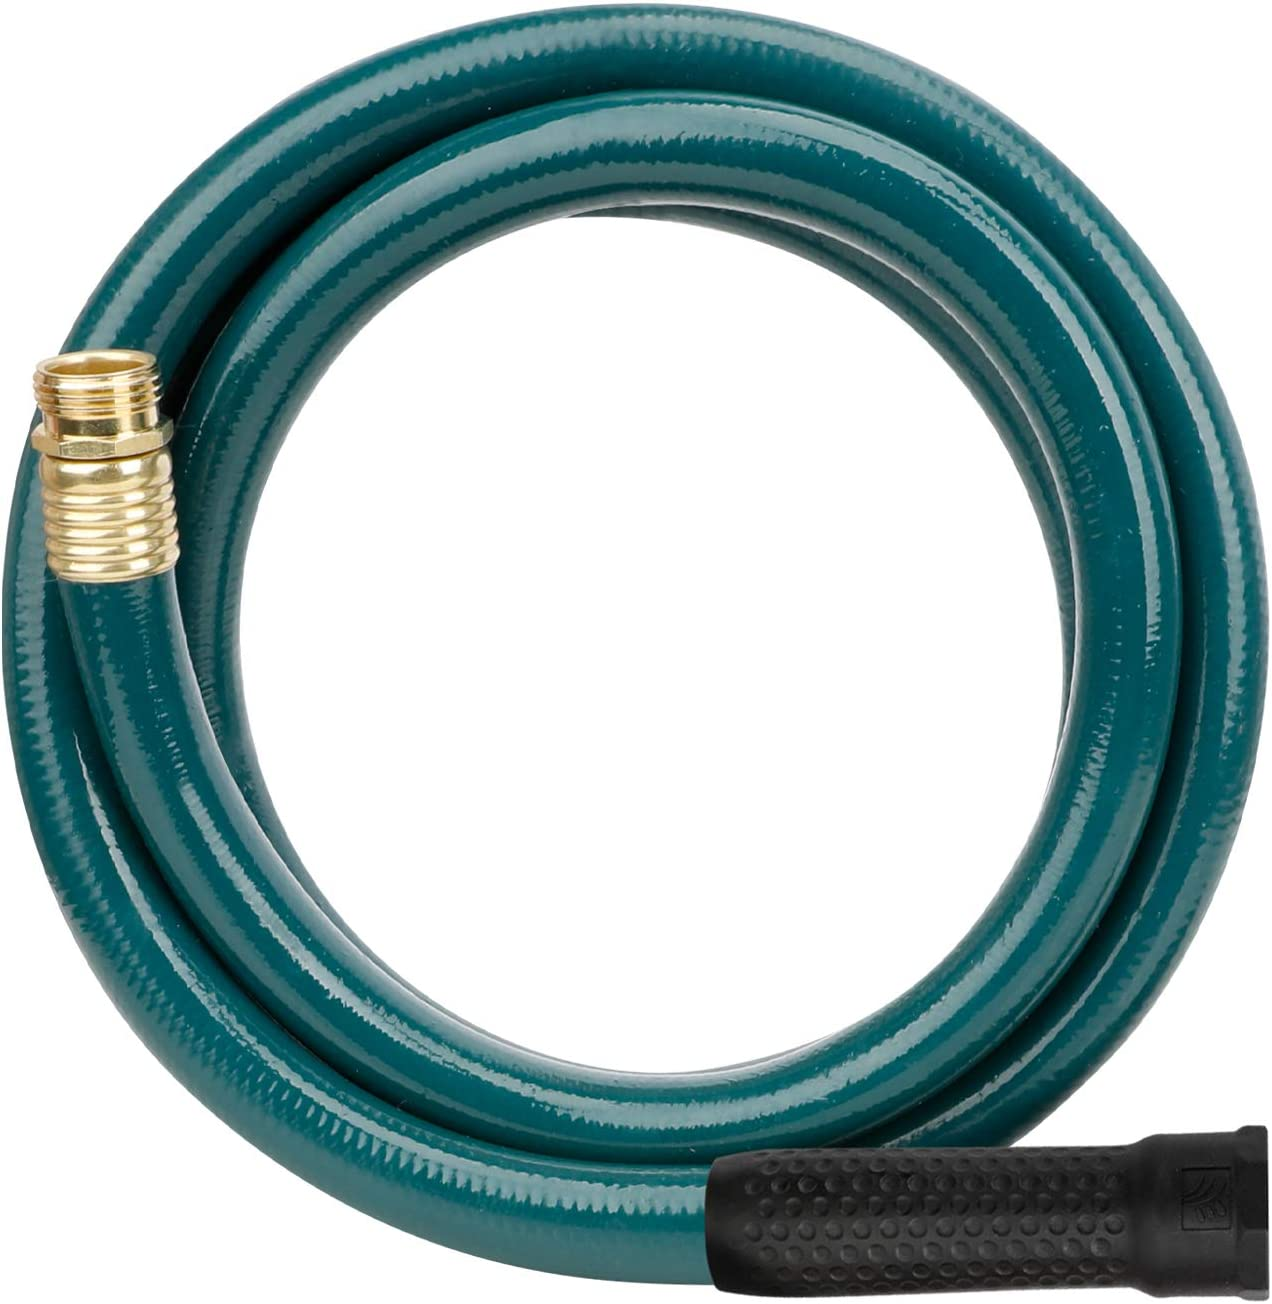 Worth Garden 5/8 in. x 12' Garden Hose - 12FT Durable PVC Non Kinking Heavy Duty Water Hose with Brass Hose Fittings - Dark Green - H055B02